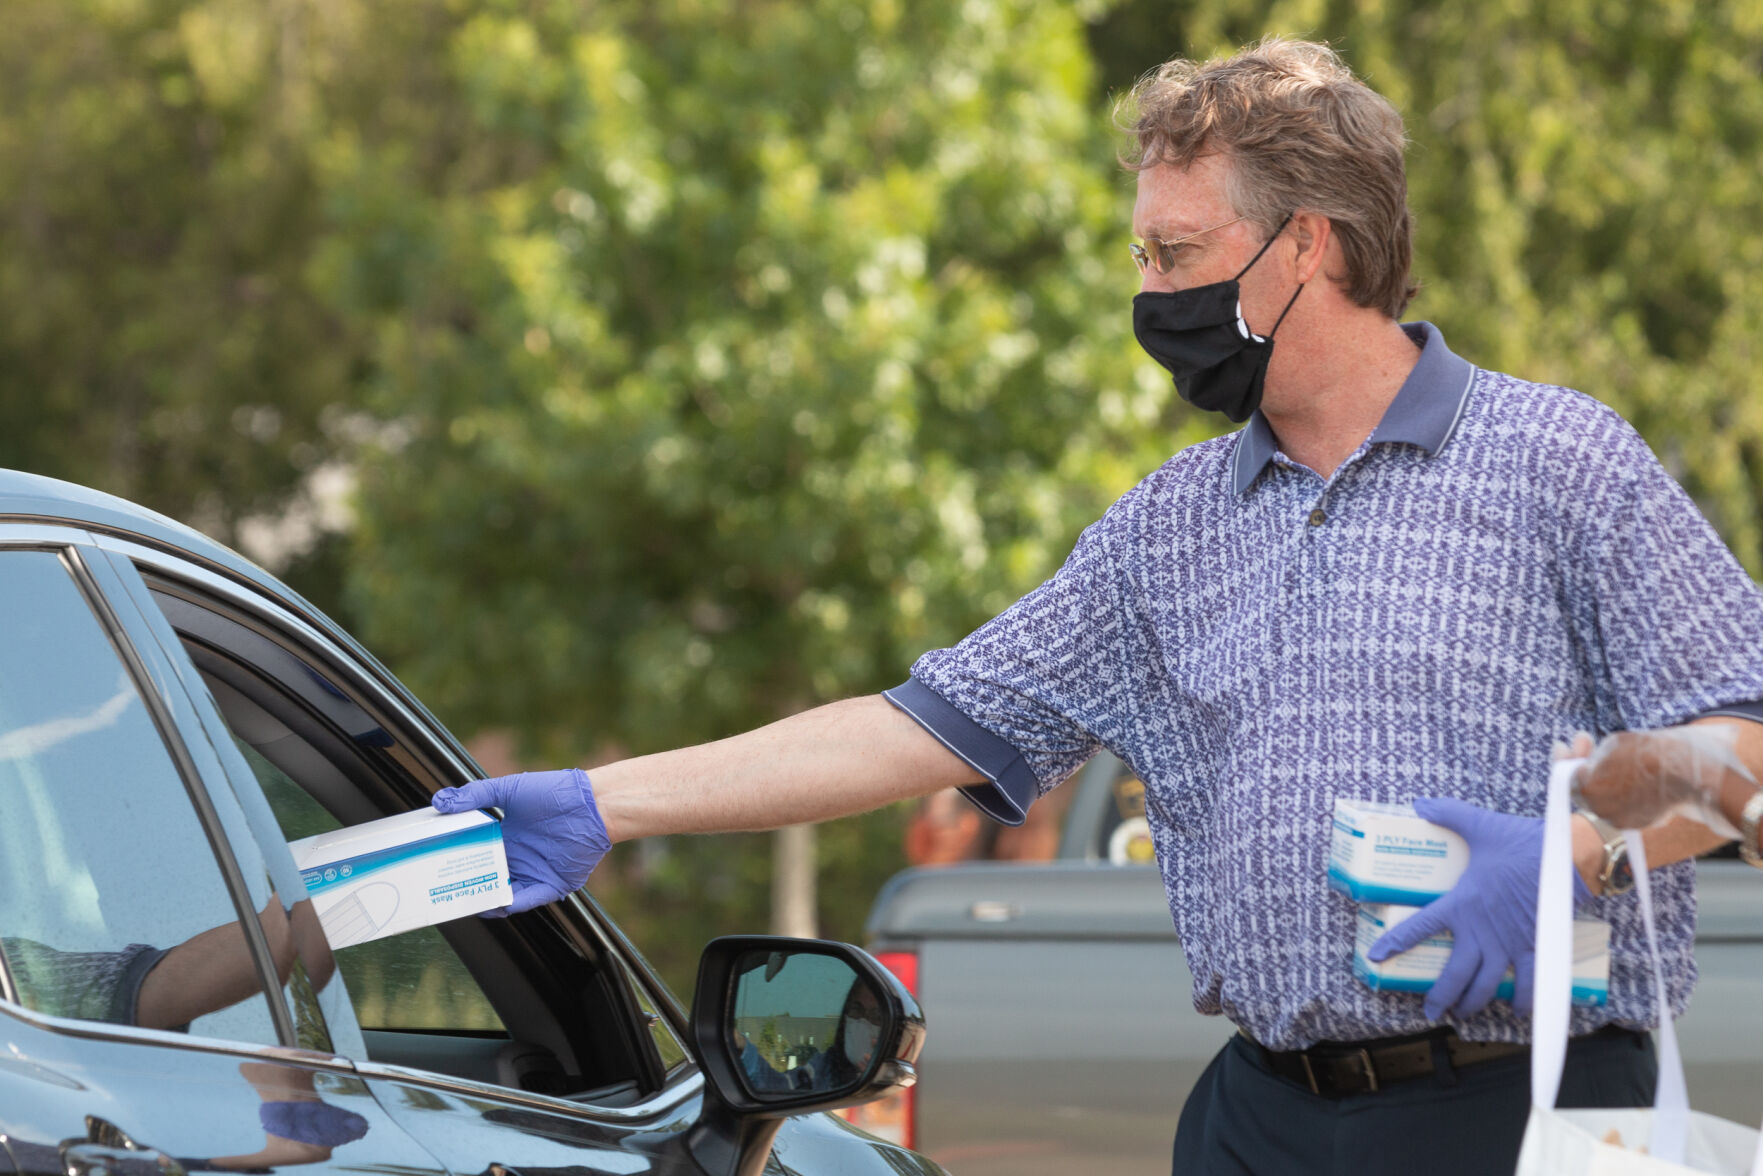 Photos: Cars line up for over three miles at Arlington face mask distribution